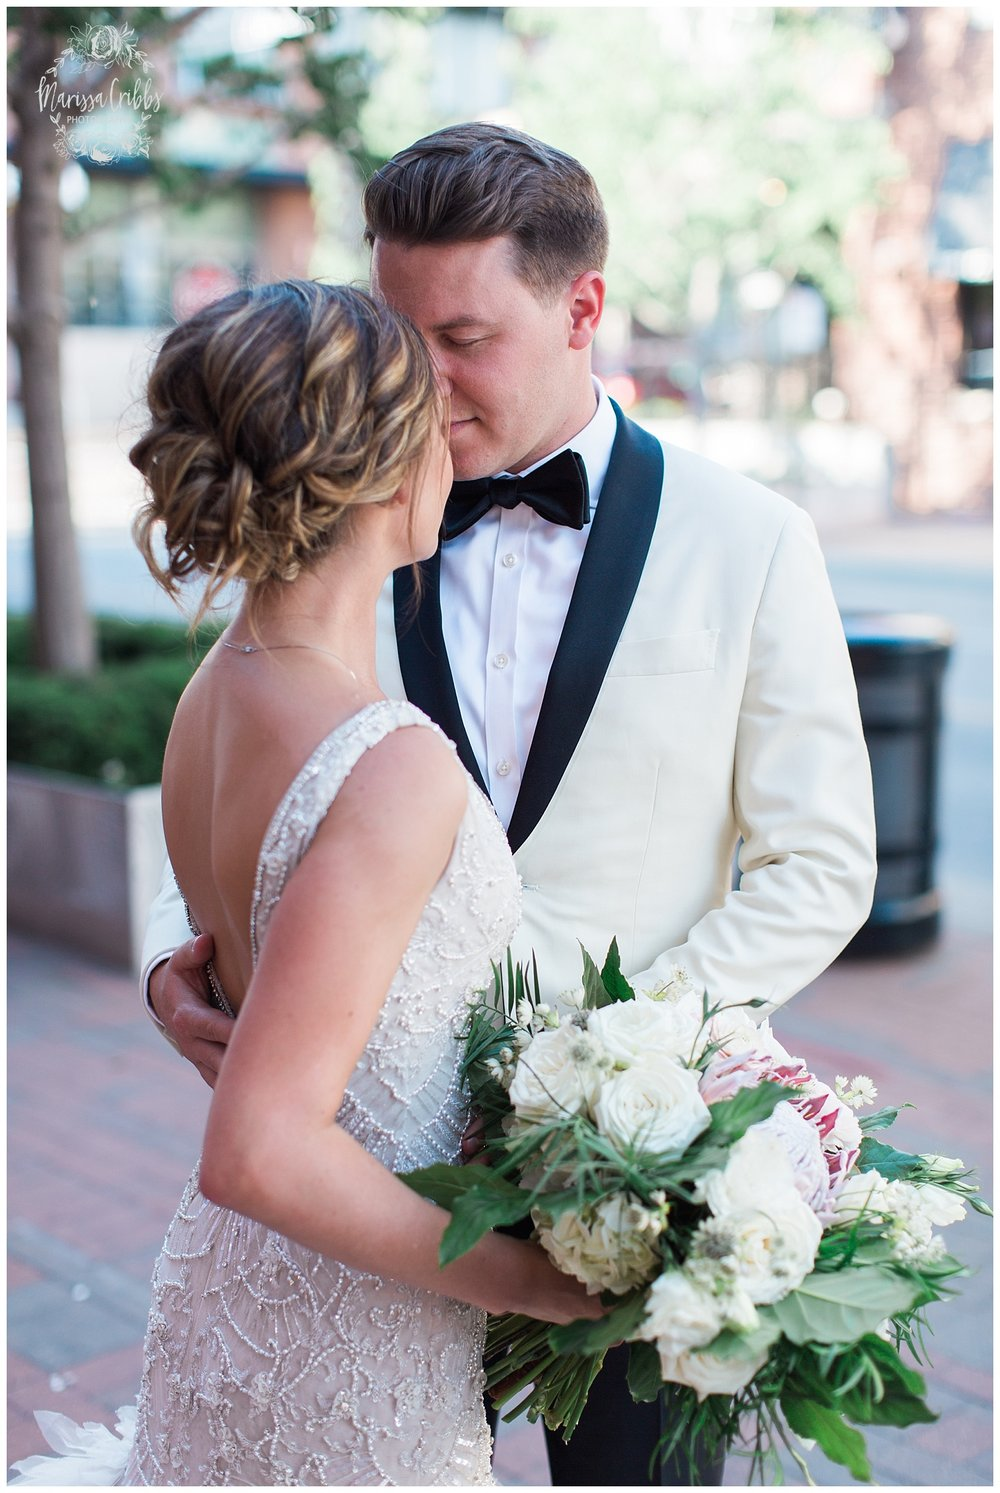 Haley & Steven Reception | The Gallery Event Space | Marissa Cribbs Photography | KC Wedding Photographers_1587.jpg